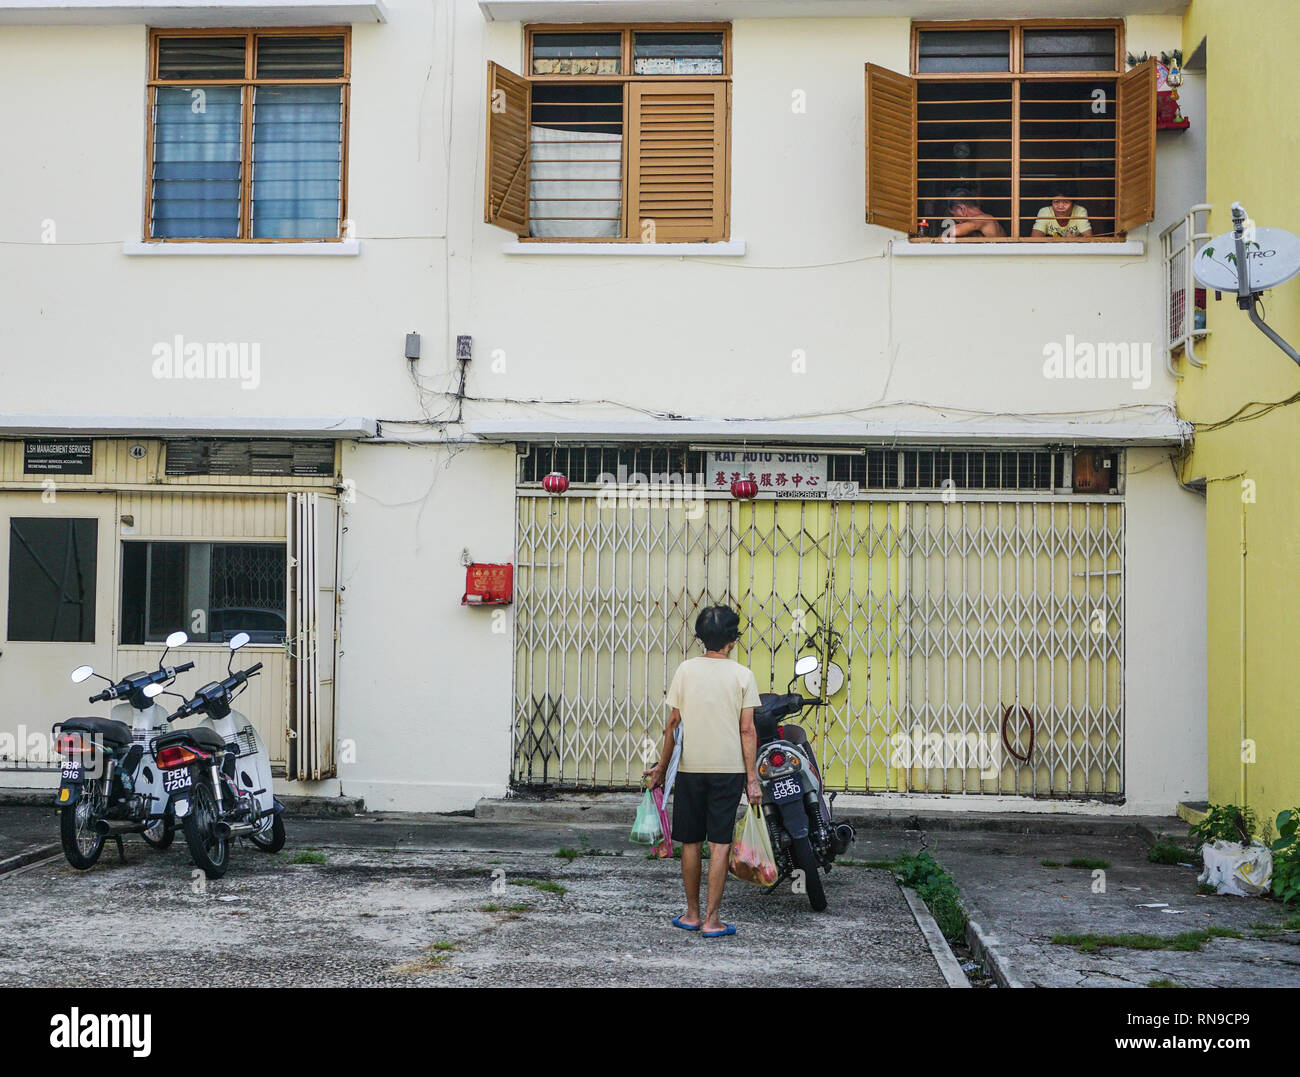 George Town, Malaysia - Aug 21, 2014. People on the old street in downtown. George Town is known for its British colonial buildings, Chinese shophouse - Stock Image